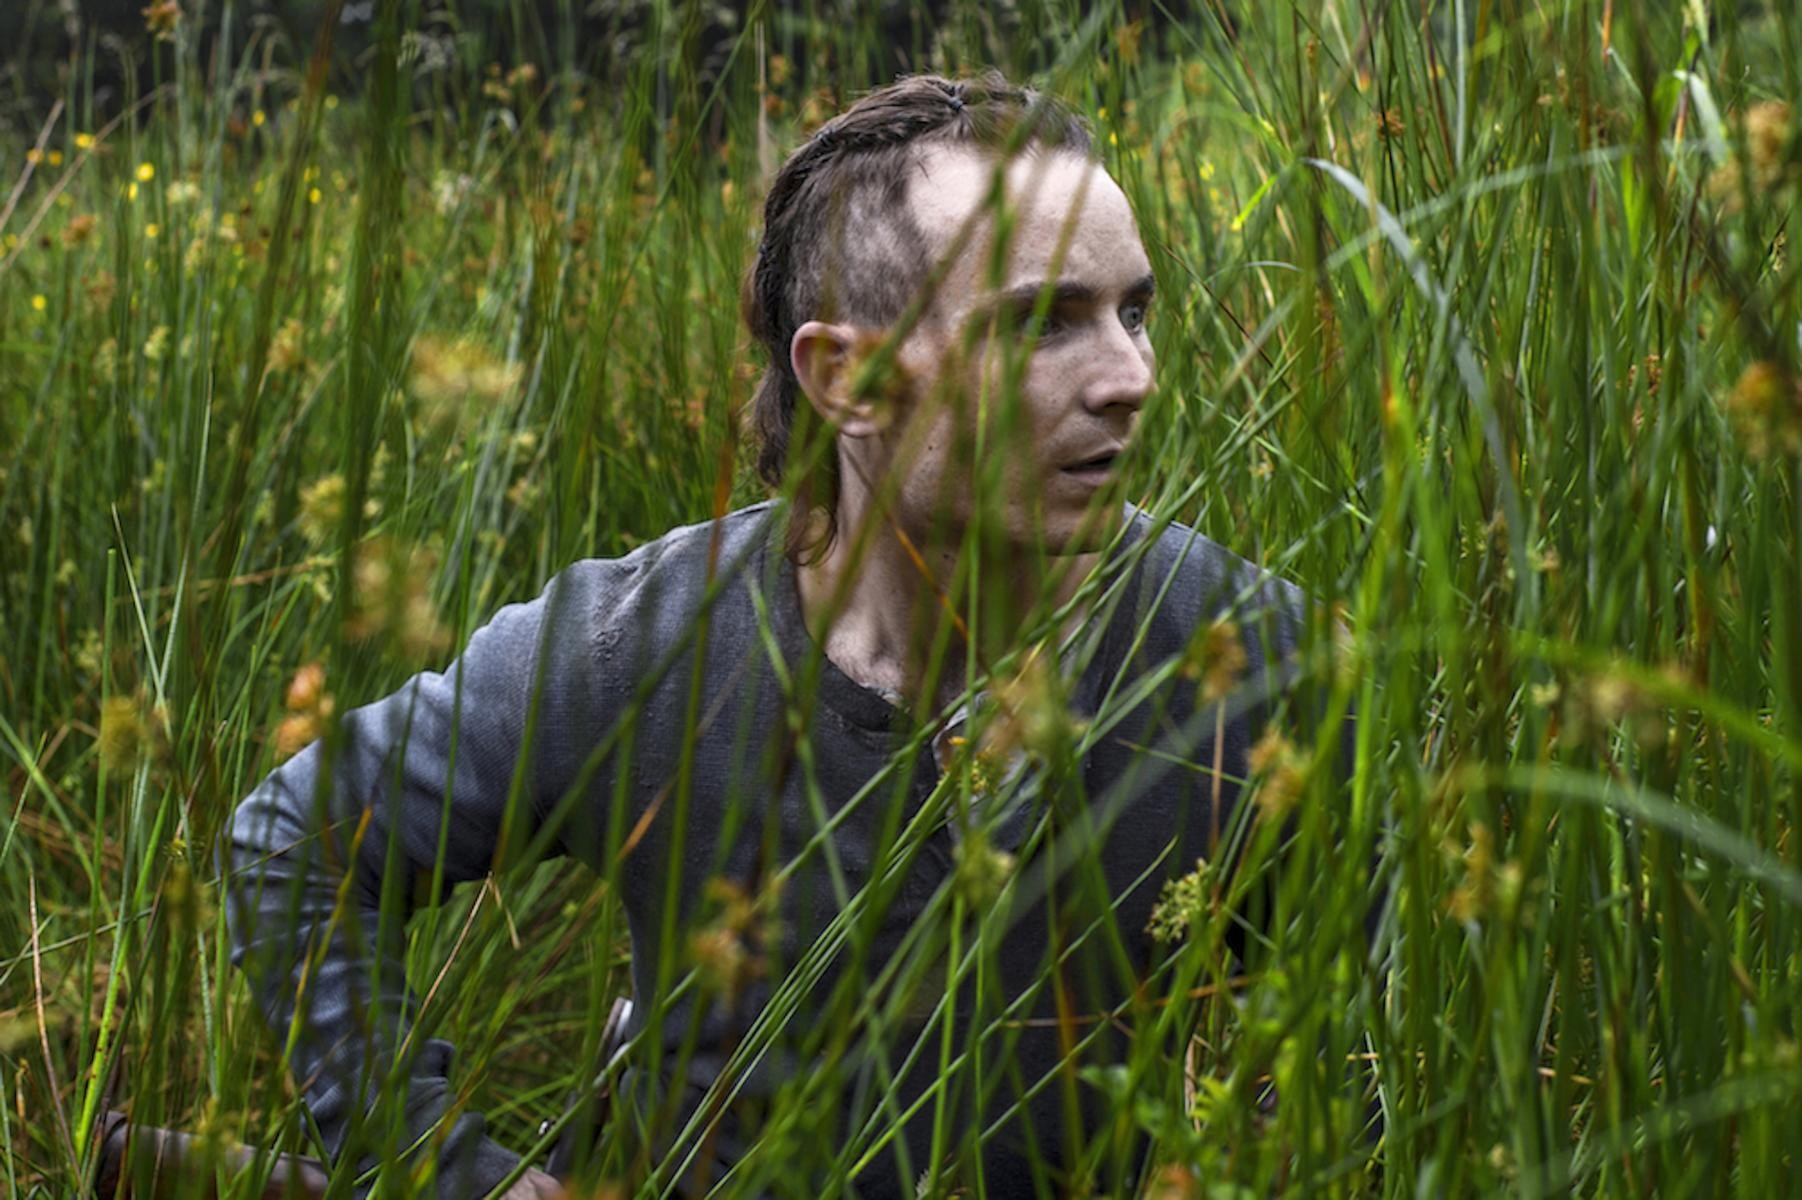 « The Survivalist », sur le qui-vive